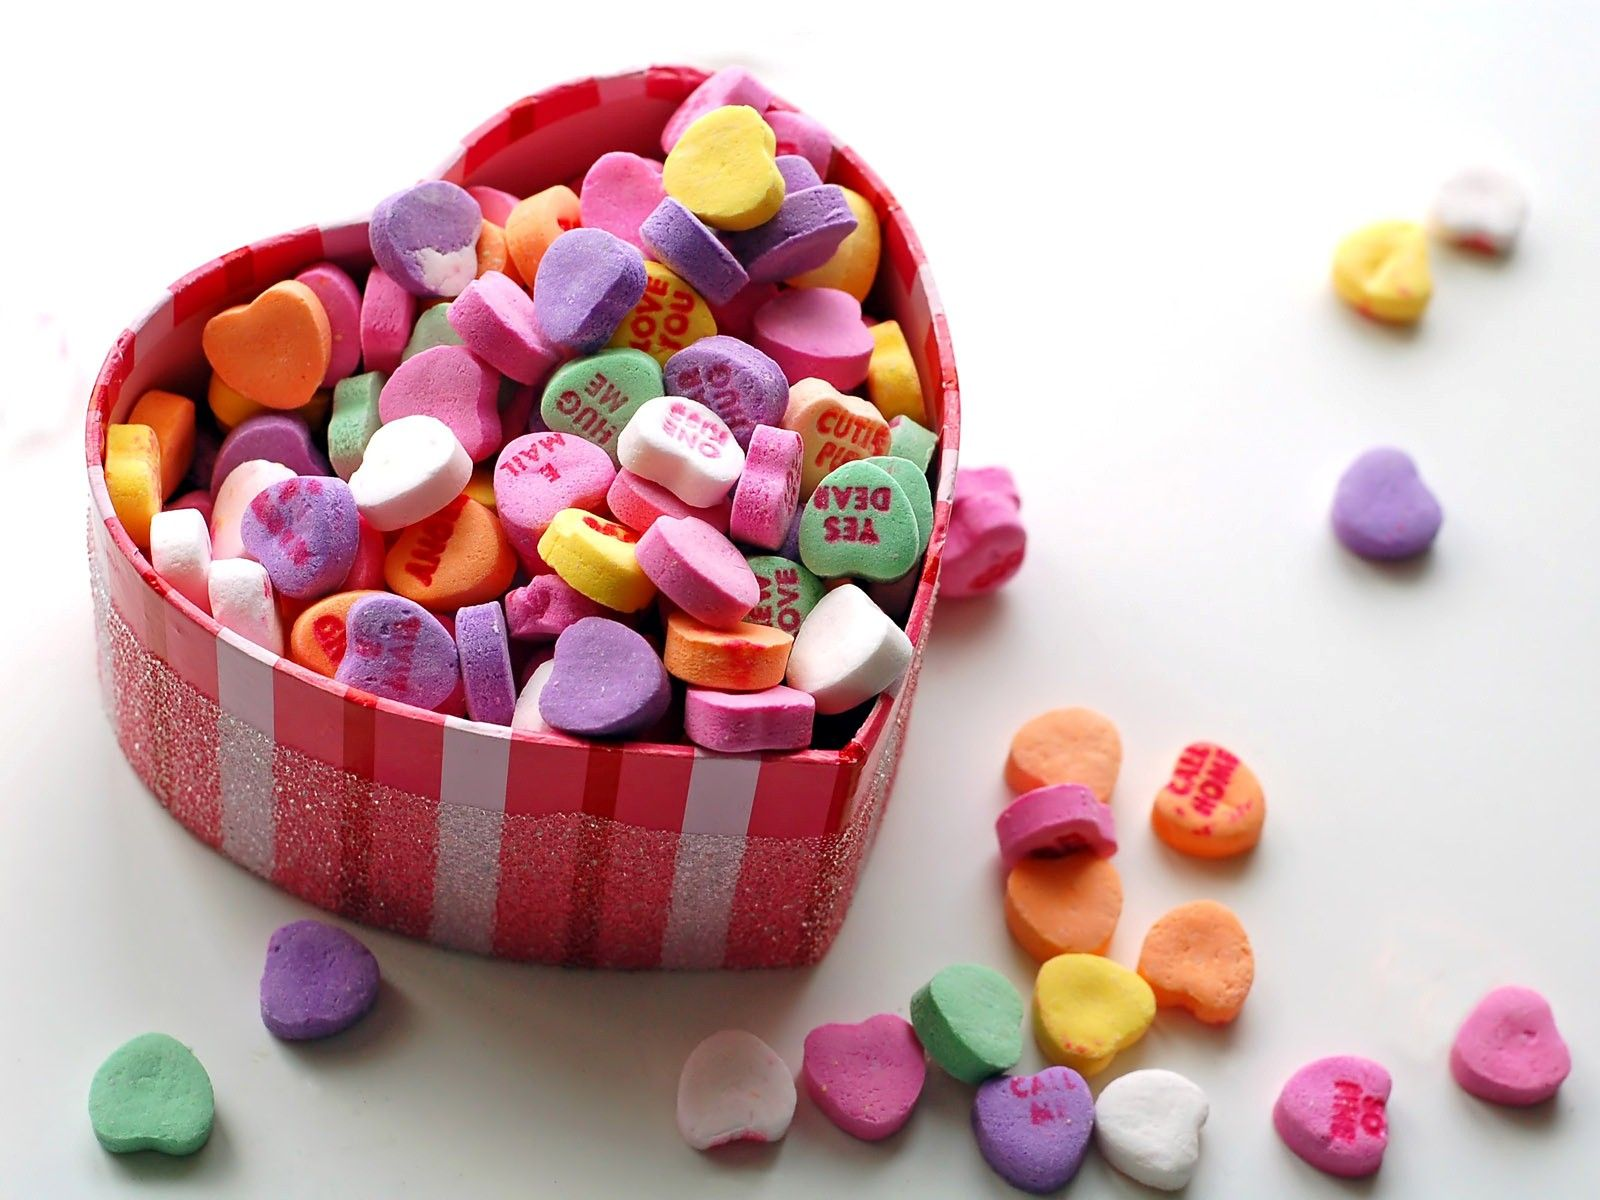 candy hd wallpaper | ashima | pinterest | heart shaped candy, hd